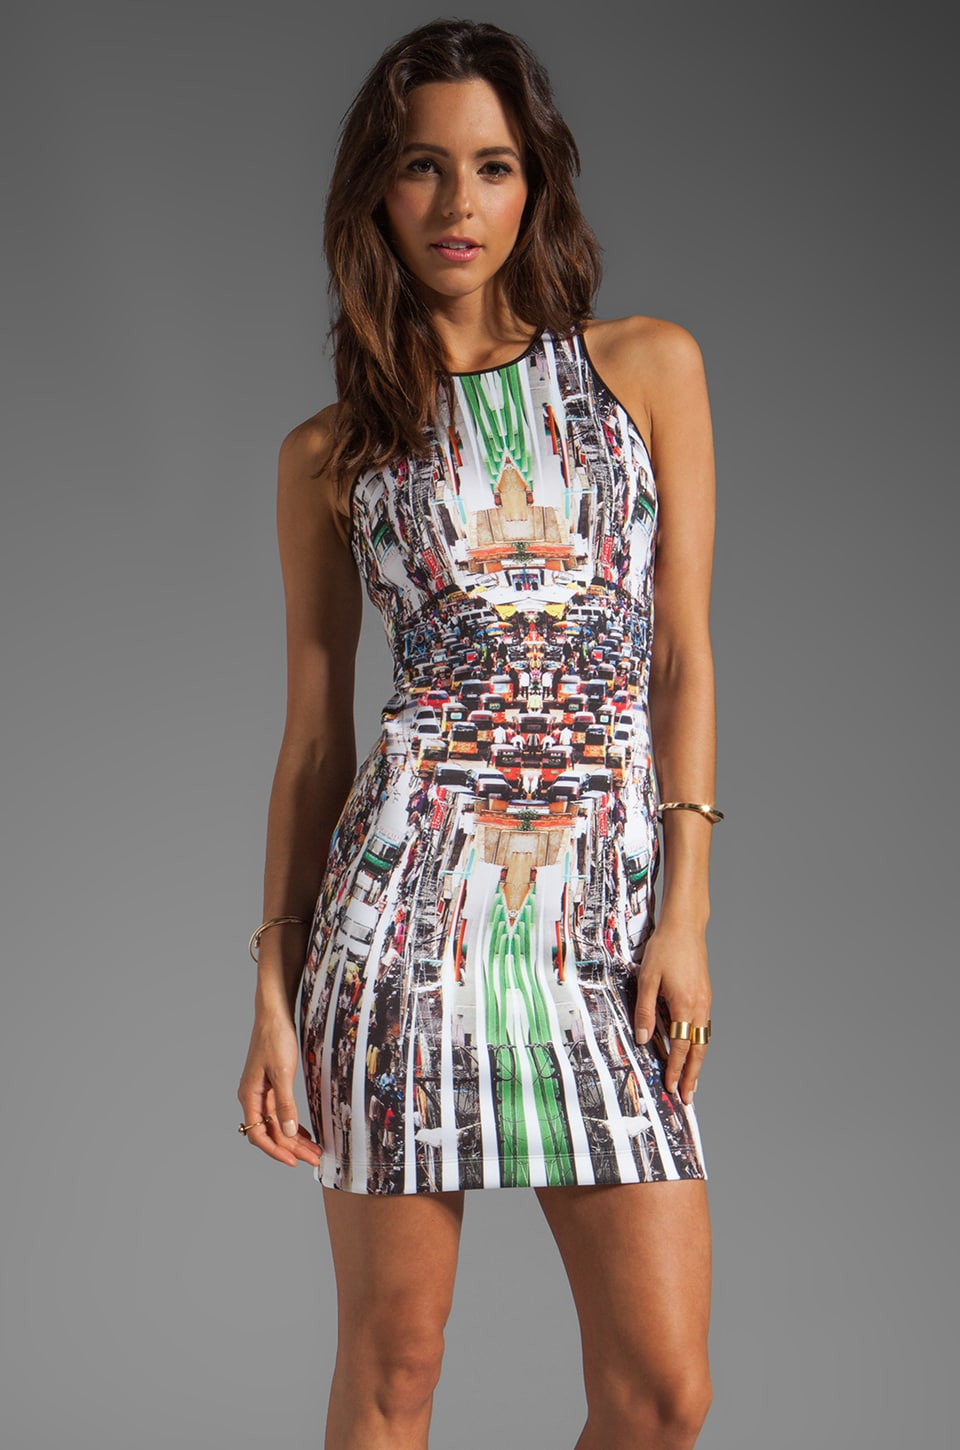 Clover Canyon Stop Traffic Neoprene Dress in Multi